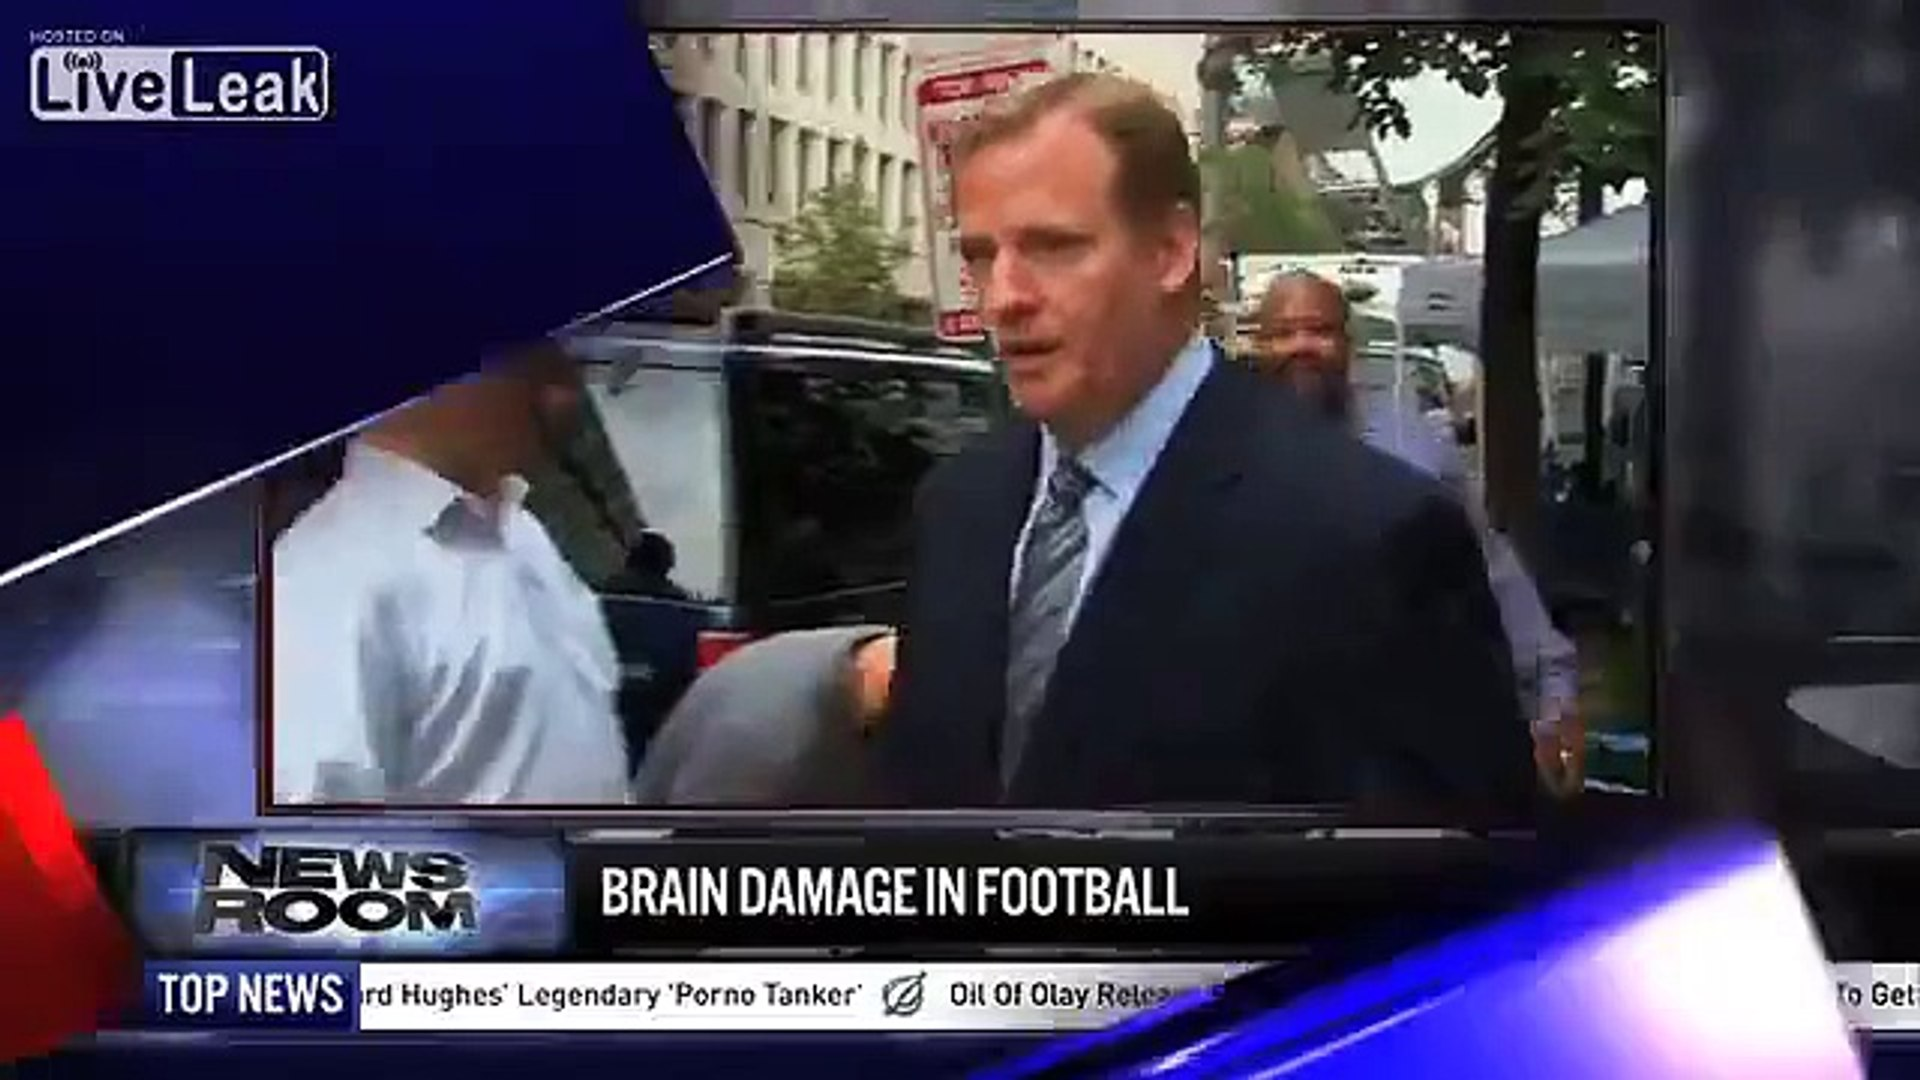 Breaking News! NFL Concludes Ex-Players Taking Their Own Lives Because 'They Miss Football So M